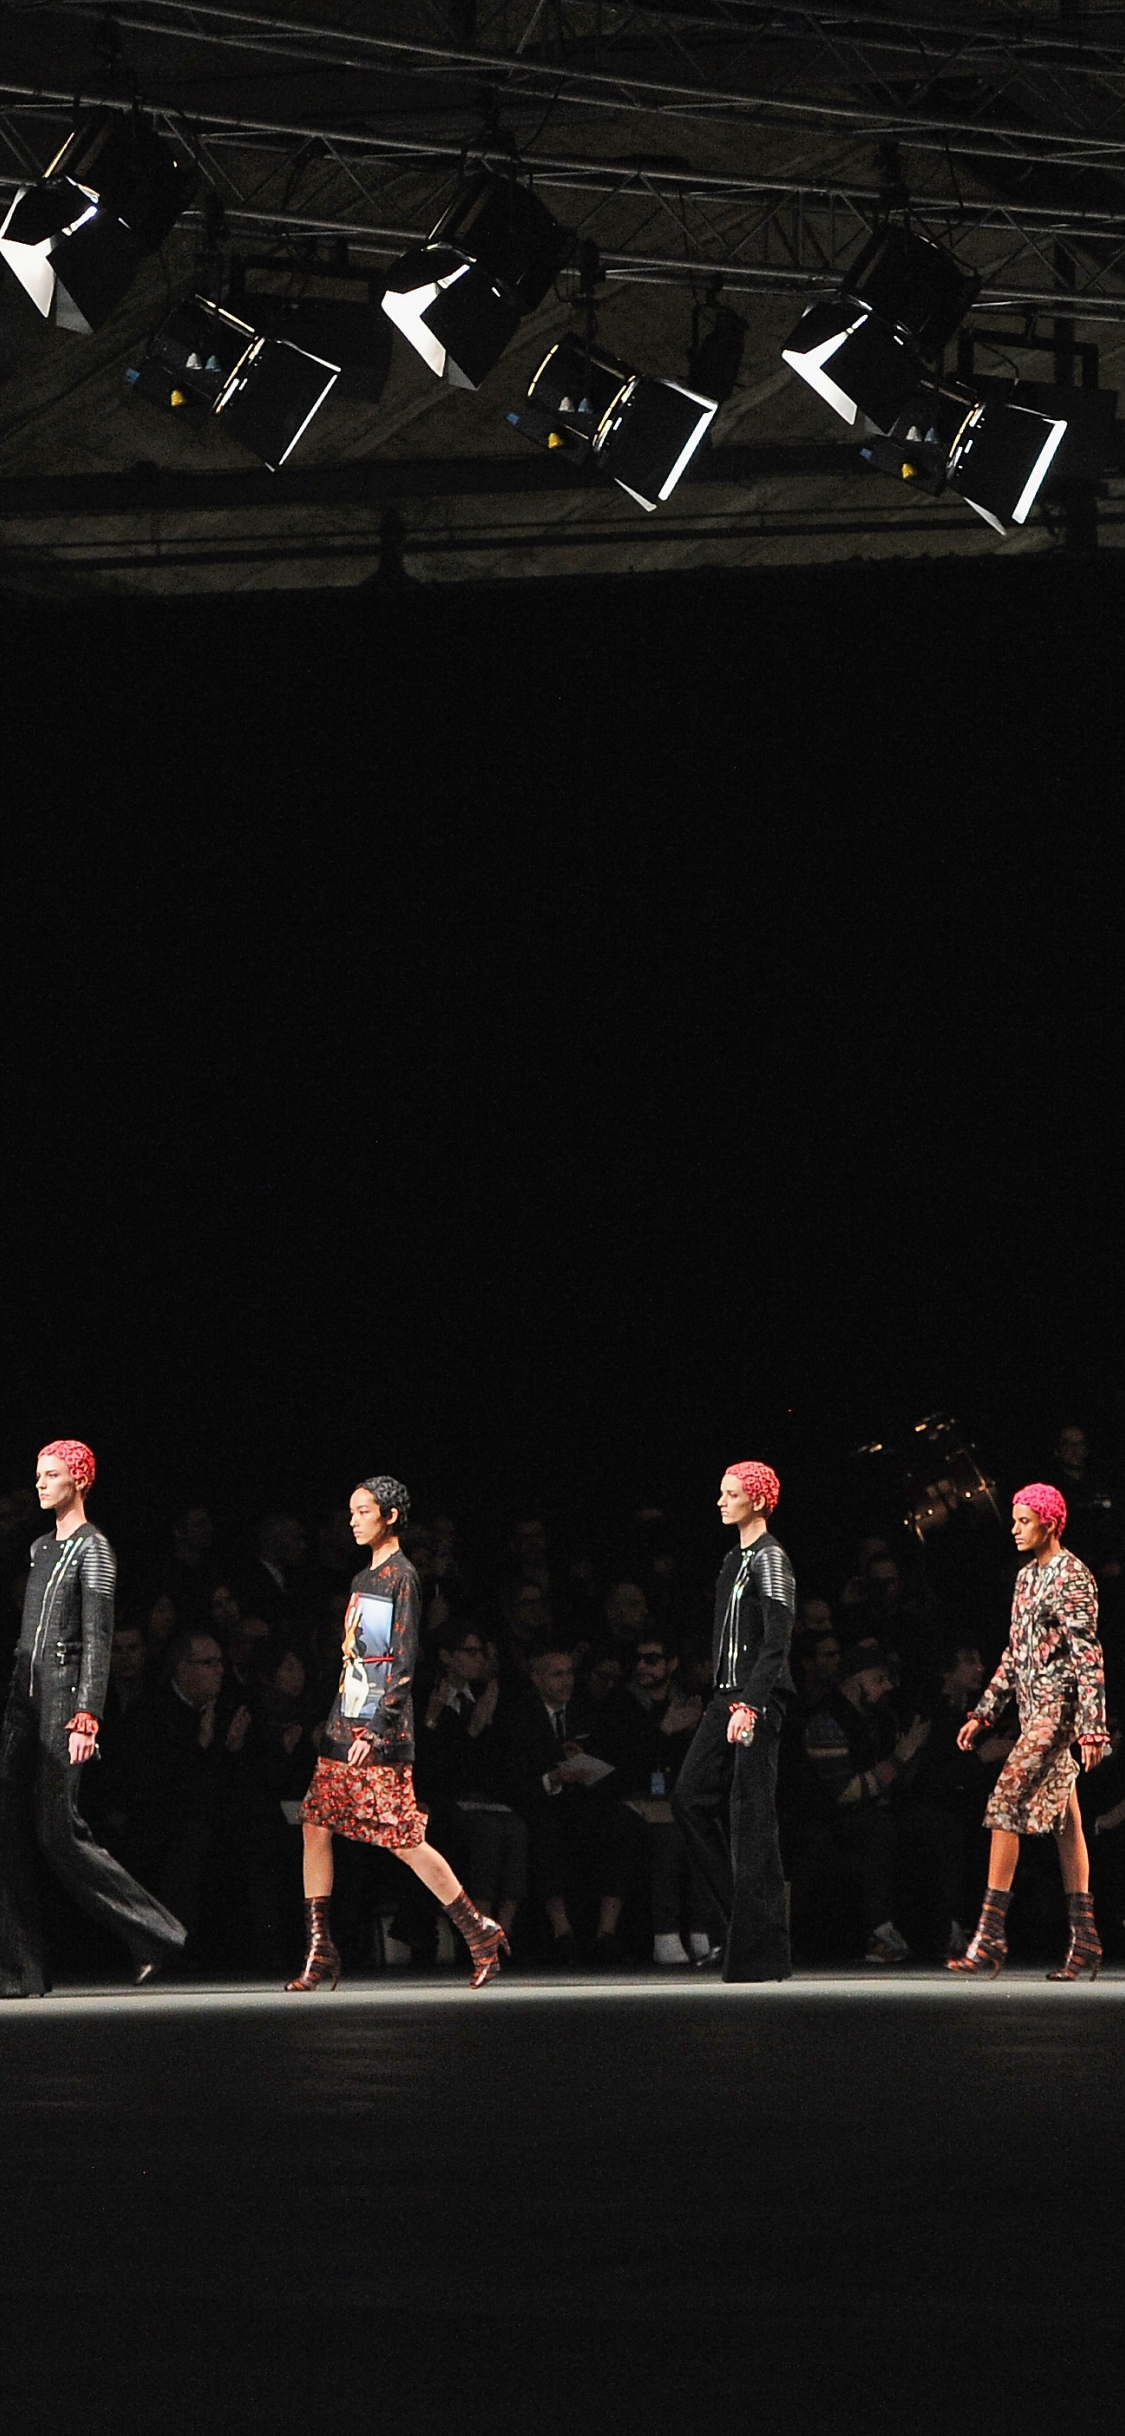 download Givenchy fashion show wallpapers and images 1125x2436